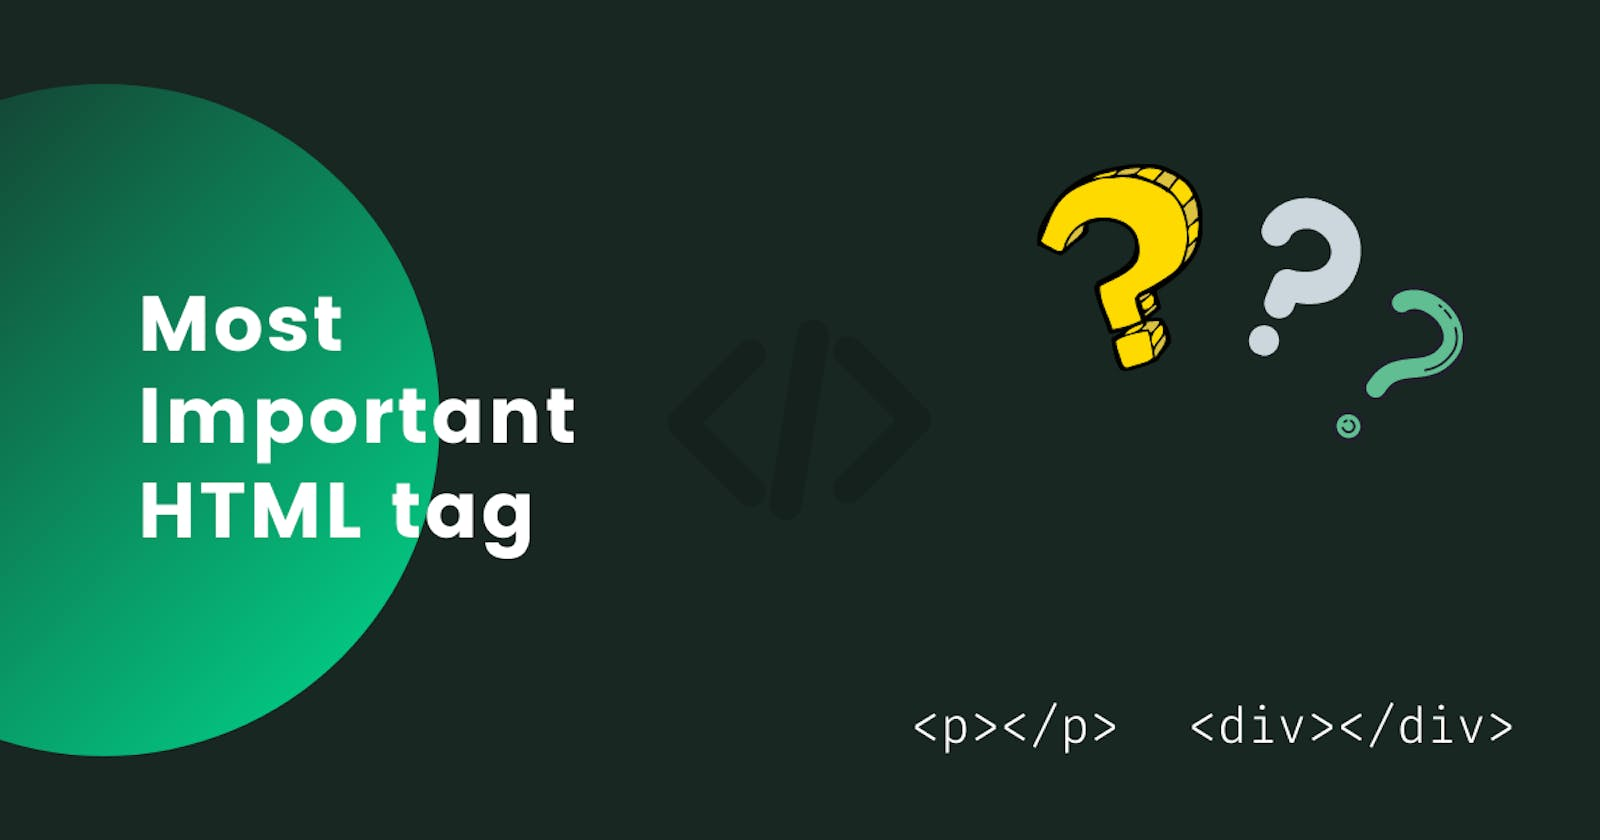 What's the most important HTML tag?